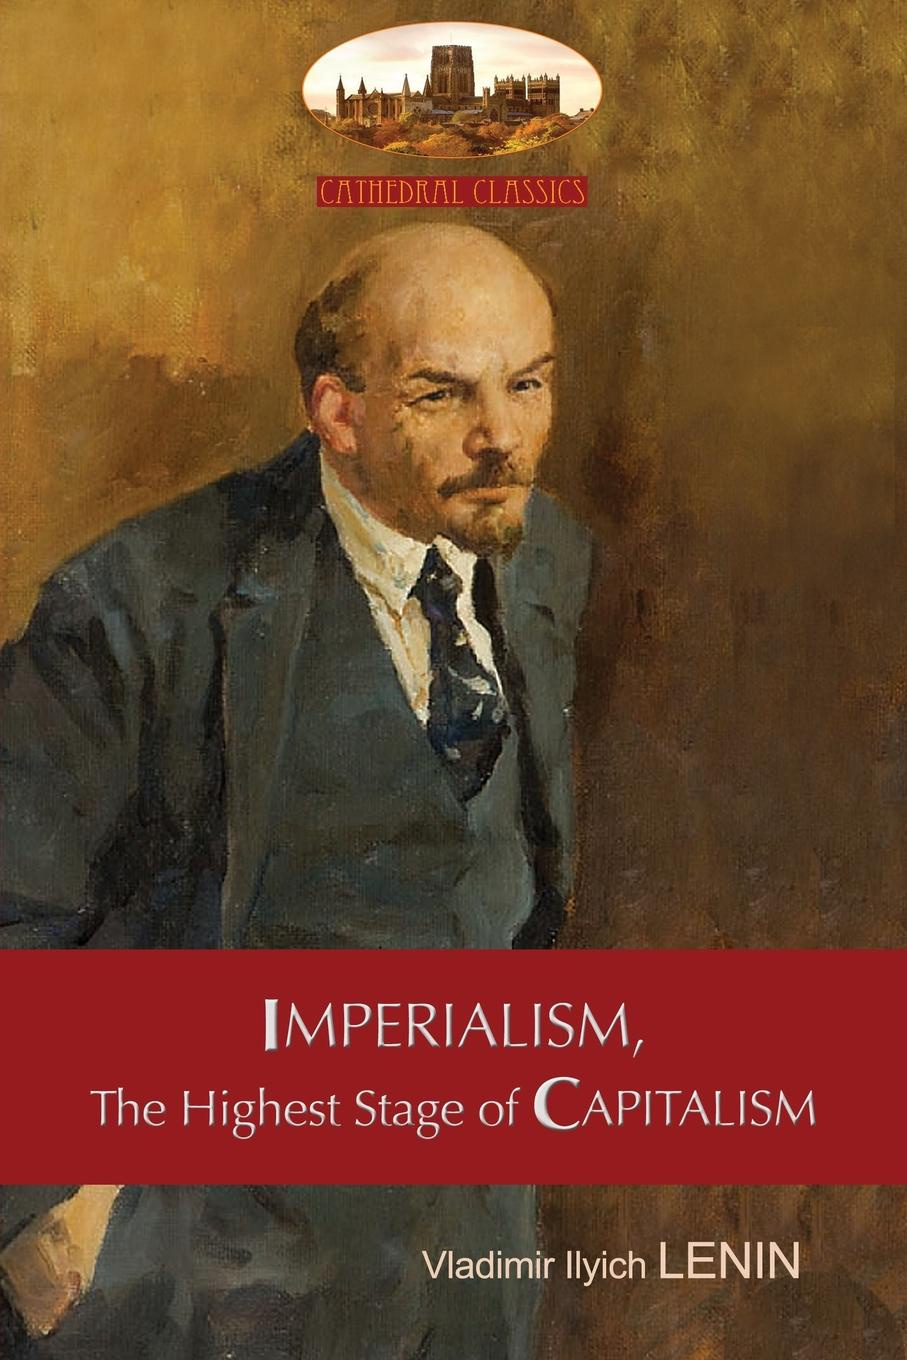 Vladimir Ilyich Lenin Imperialism, The Highest Stage of Capitalism - A Popular Outline. Unabridged with original tables and footnotes (Aziloth Books) reinventing capitalism in the